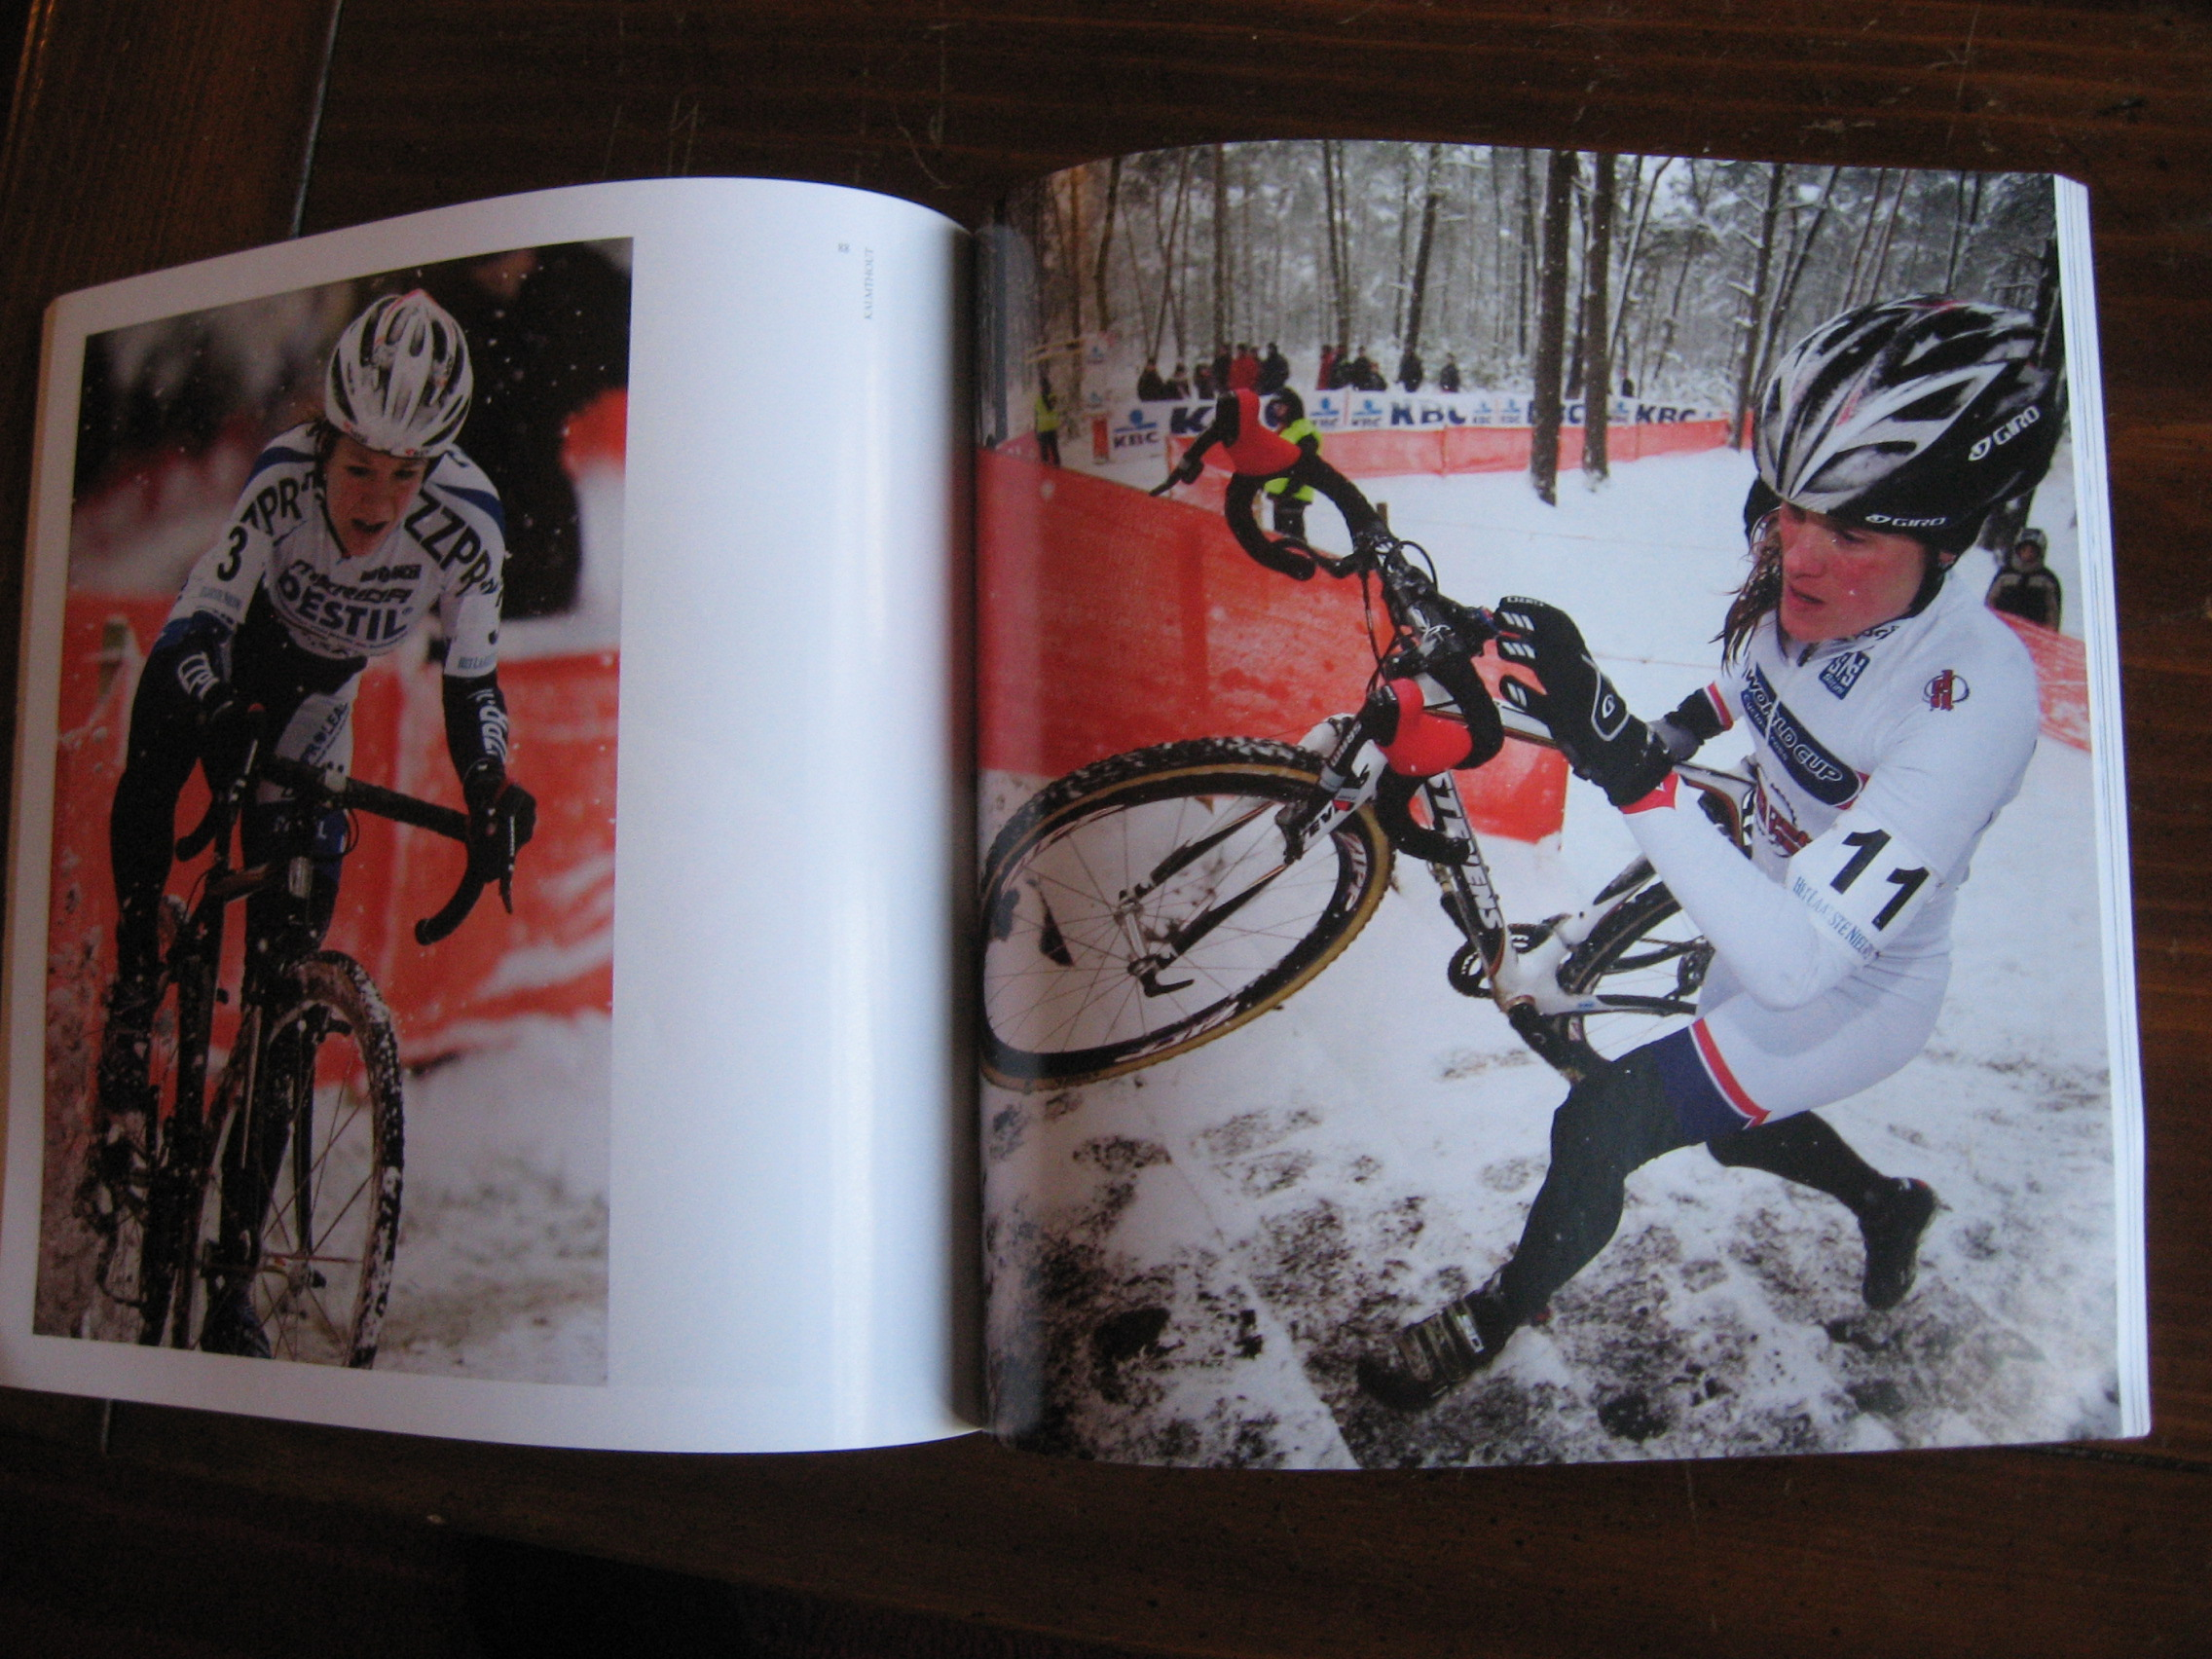 UCI Cyclocross World Cup 2009-2010, by Balint Hamvas